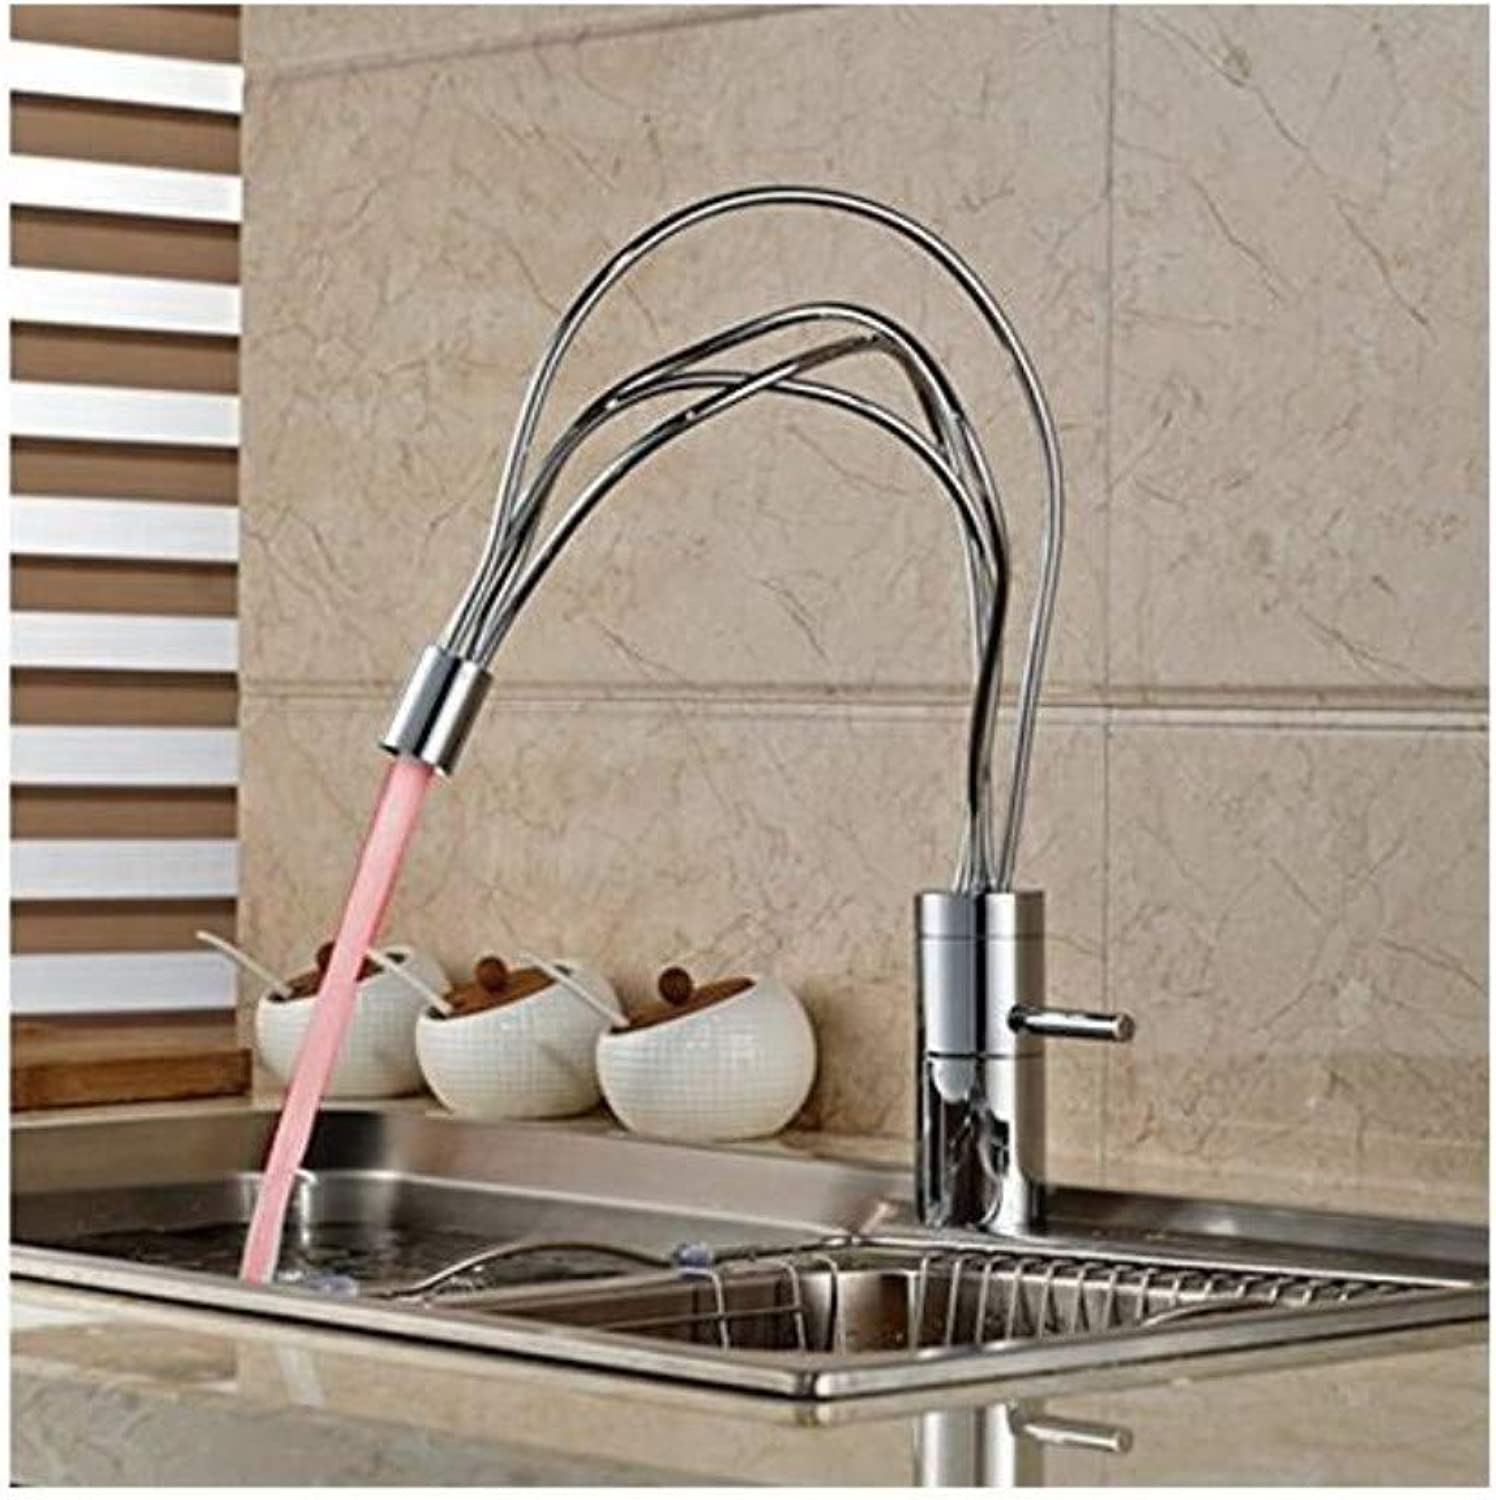 Vintage Plated Kitchen Faucet Modern Polish Chrome Kitchen Sink Faucet Vanity Single Handle Hold Led color Changing Mixer Tap